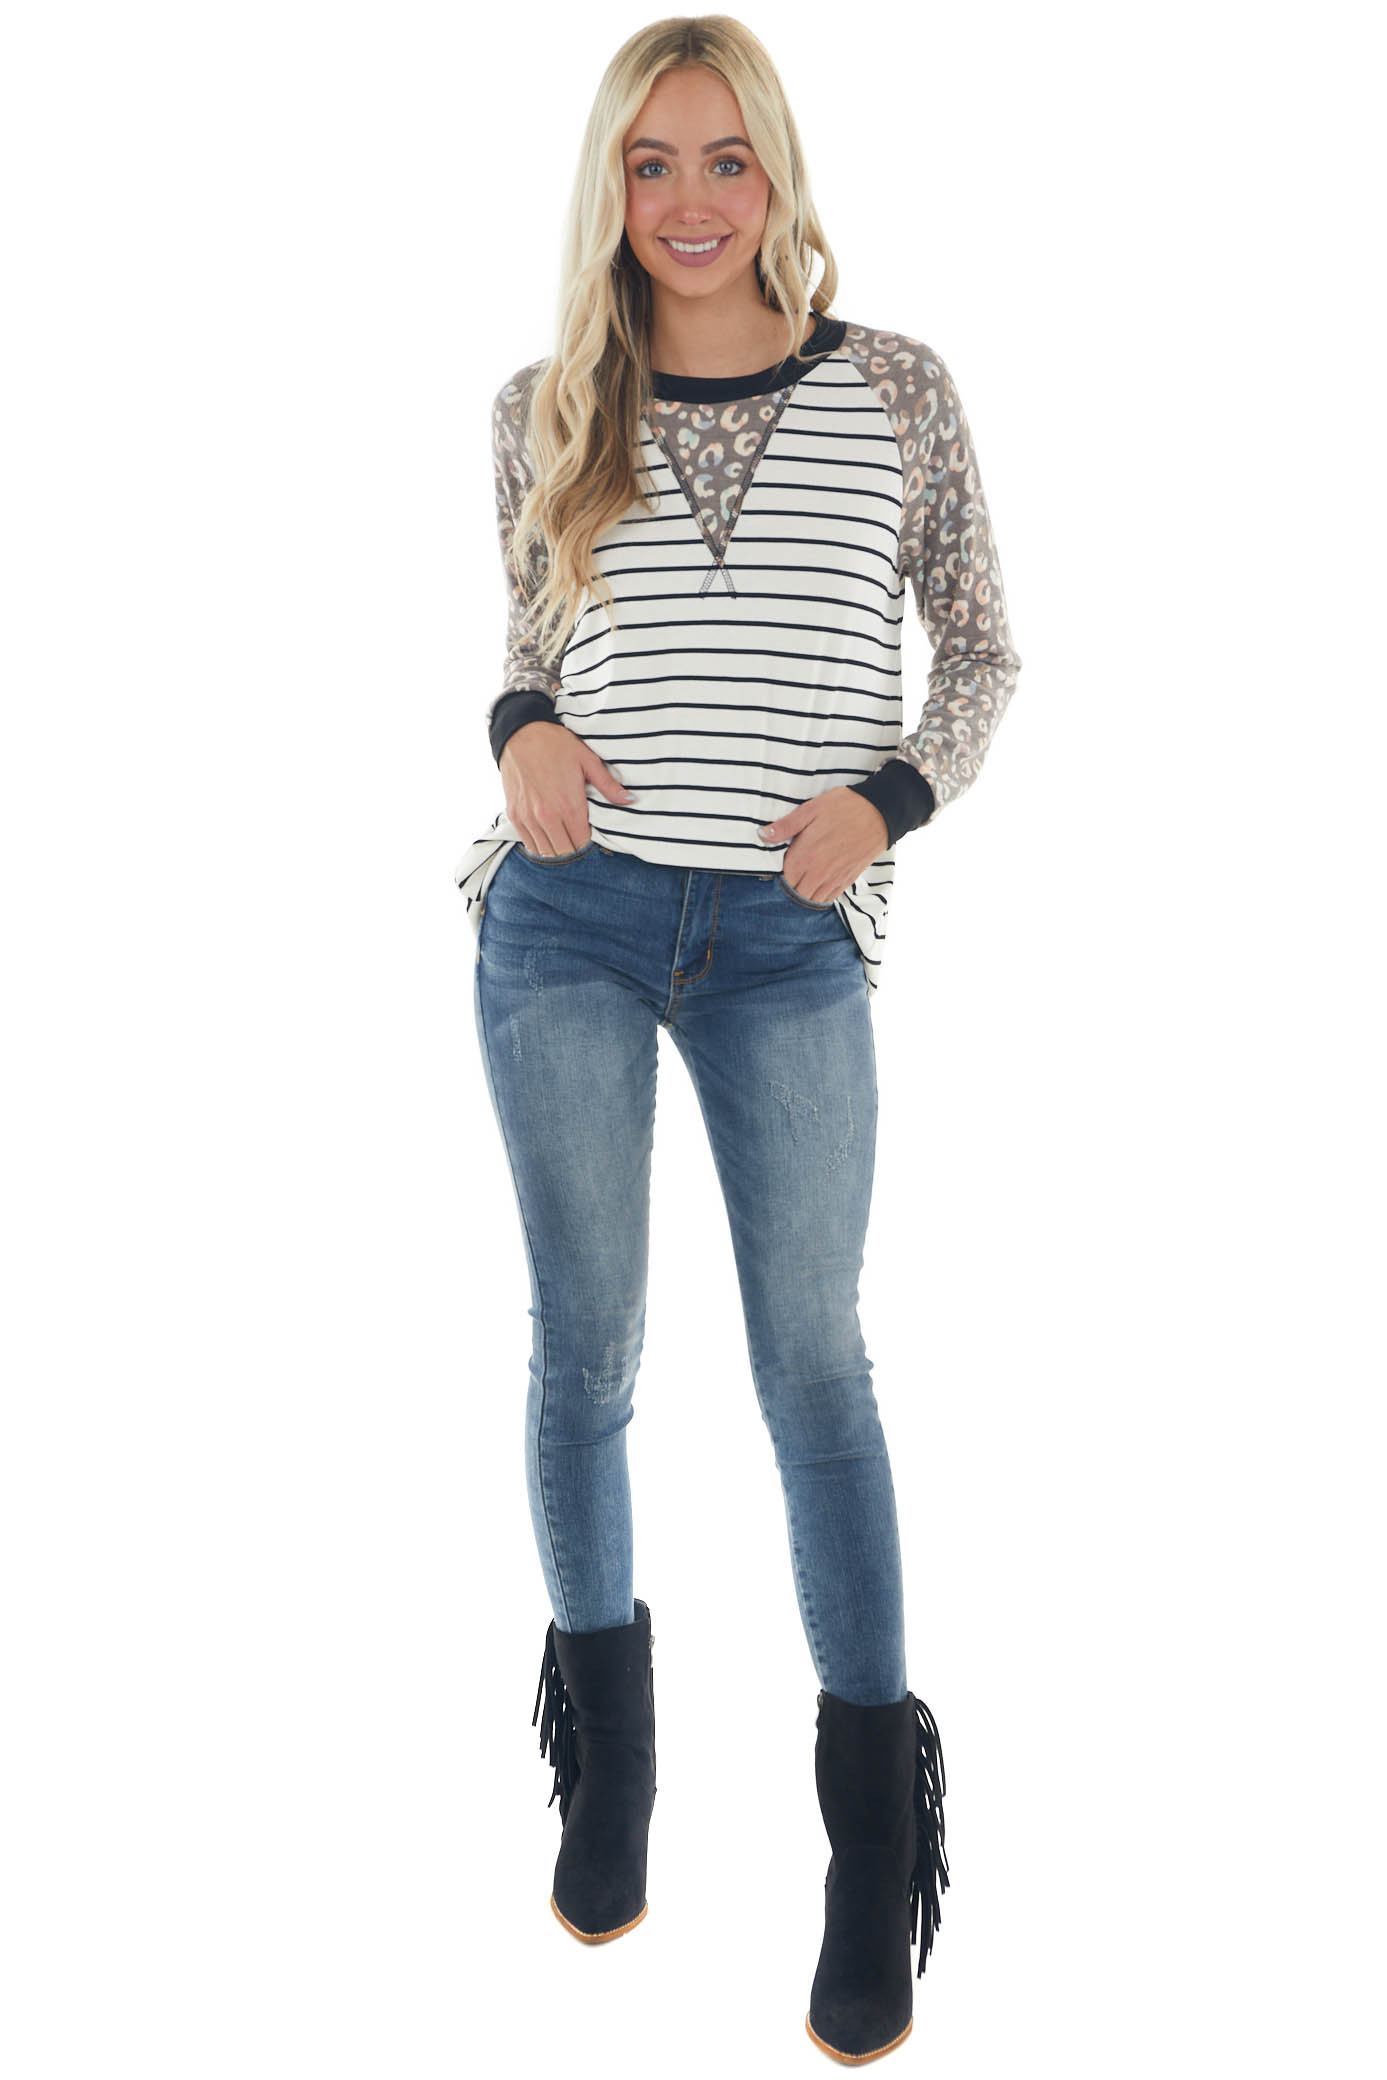 Ivory Striped and Leopard Long Sleeve Knit Top